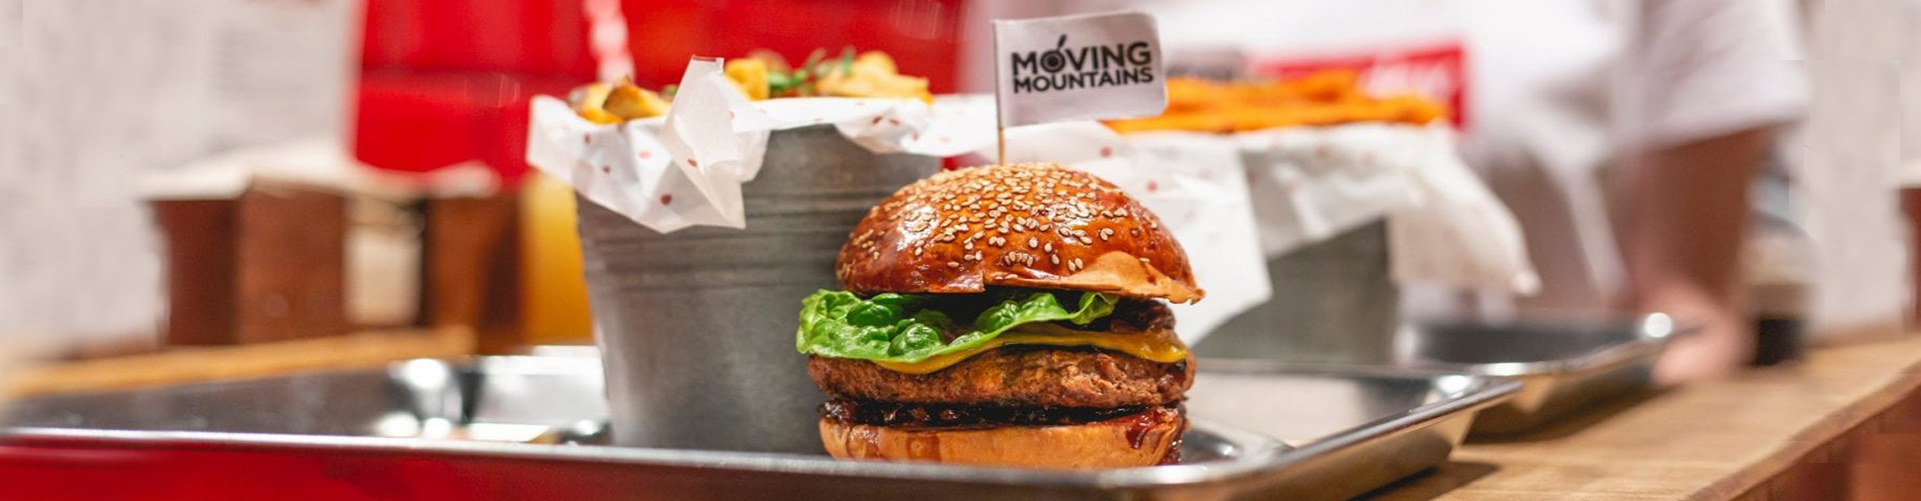 burguer moving mountains